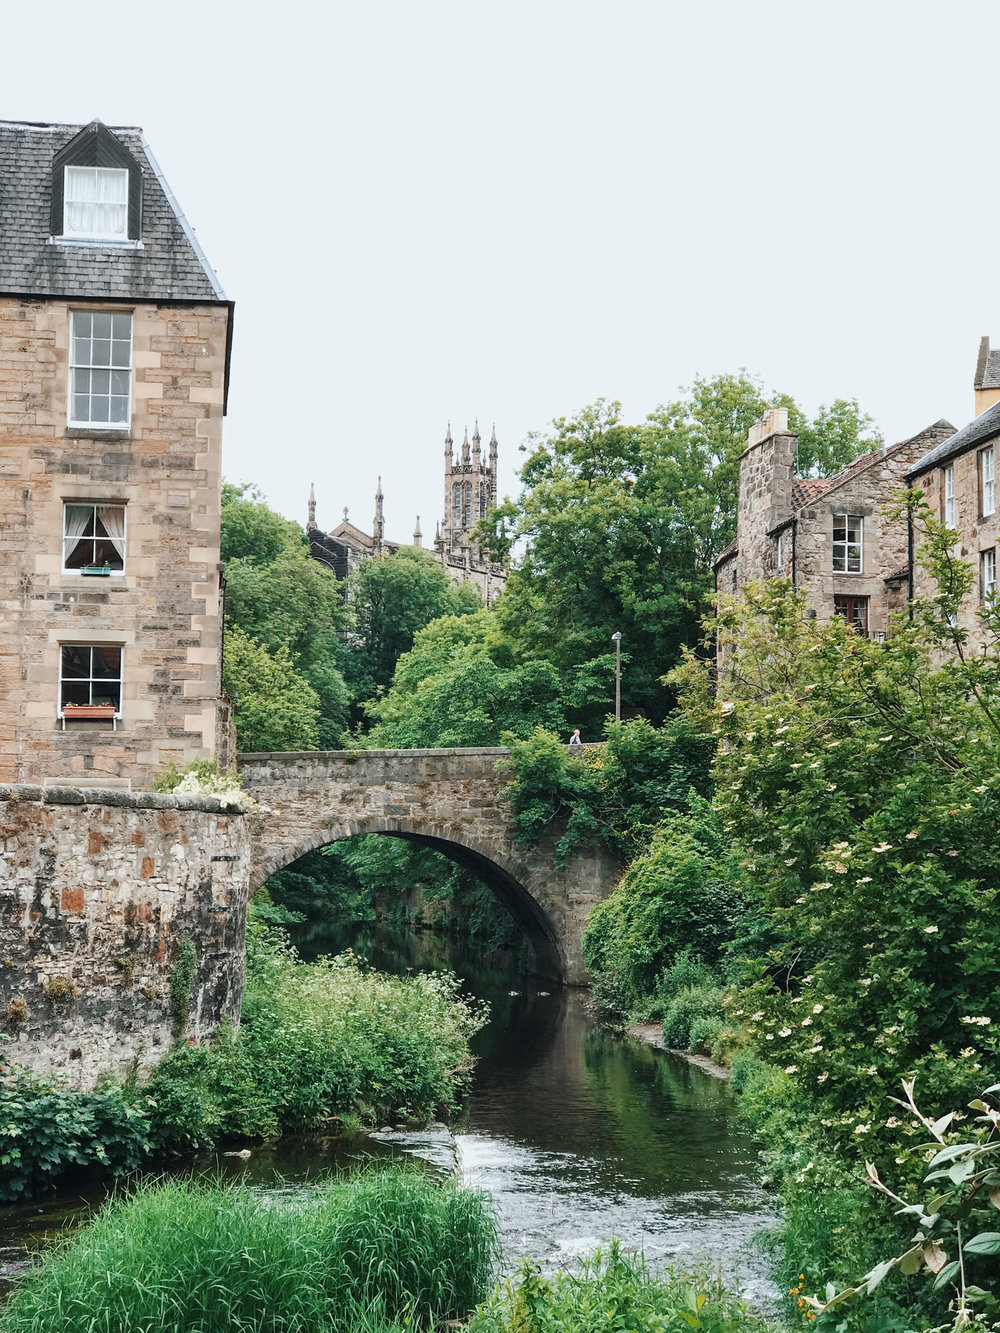 The picturesque Water of Leith